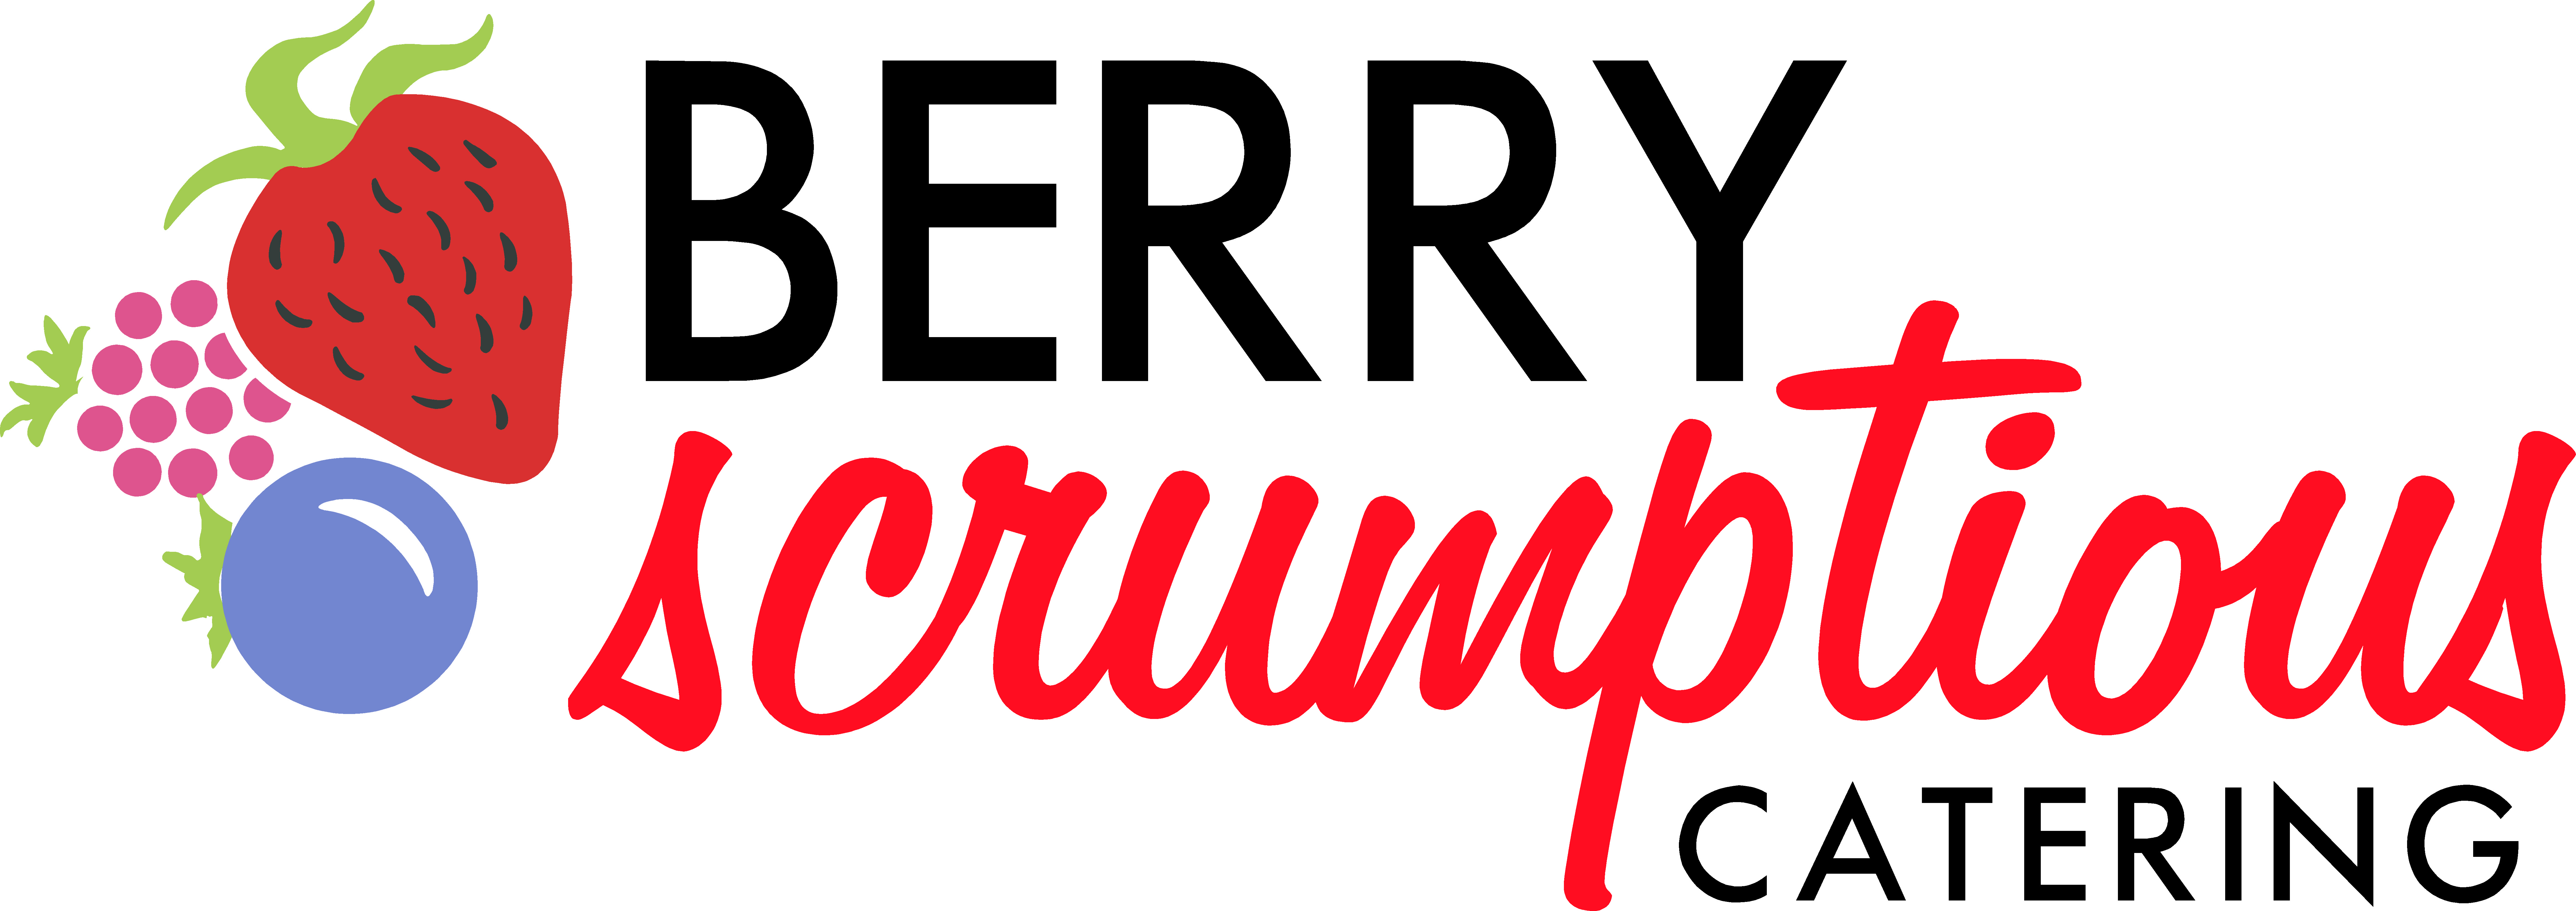 Berry Scrumptious Catering